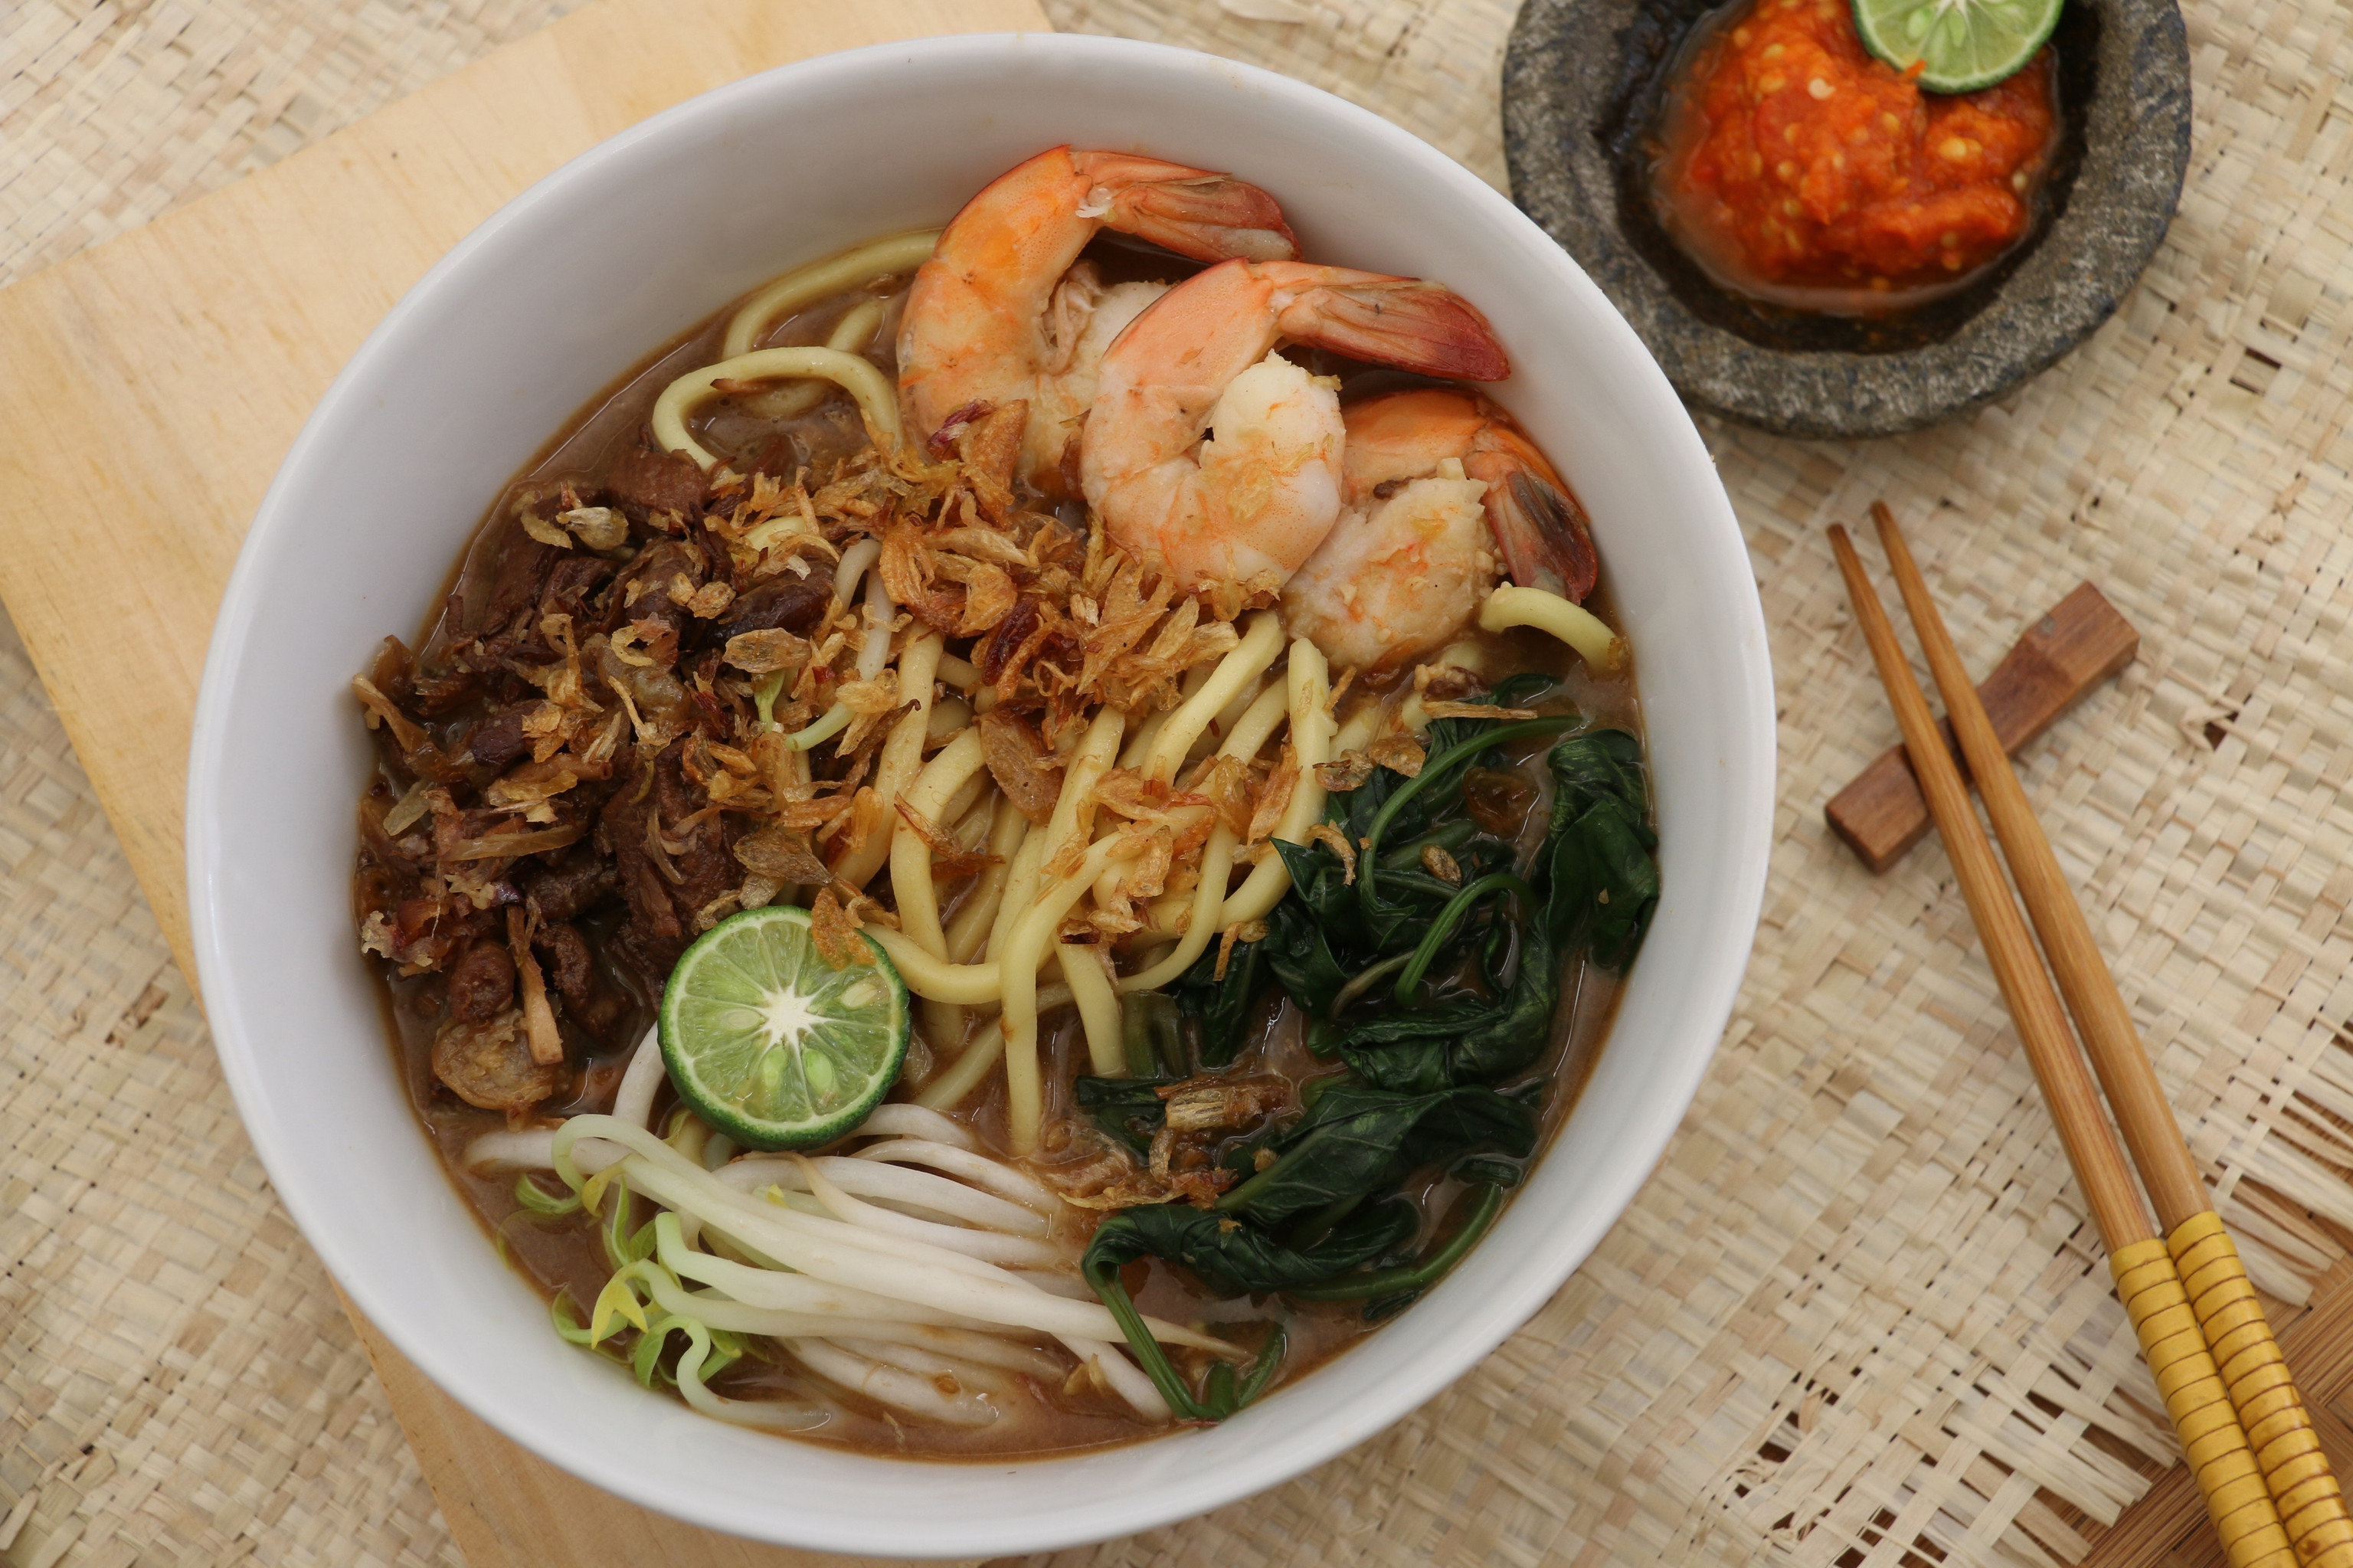 Food + Drink Southeast Asia Trip Ideas food table plate dish noodle bowl noodle soup soup asian food hokkien mee chinese noodles bún bò huế laksa chinese food southeast asian food curry mee thai food rice noodles batchoy Seafood pho hae mee misua soba recipe wonton noodles lo mein asian soups korean food fried noodles malaysian food indonesian food lamian kuy teav meal meat vegetable